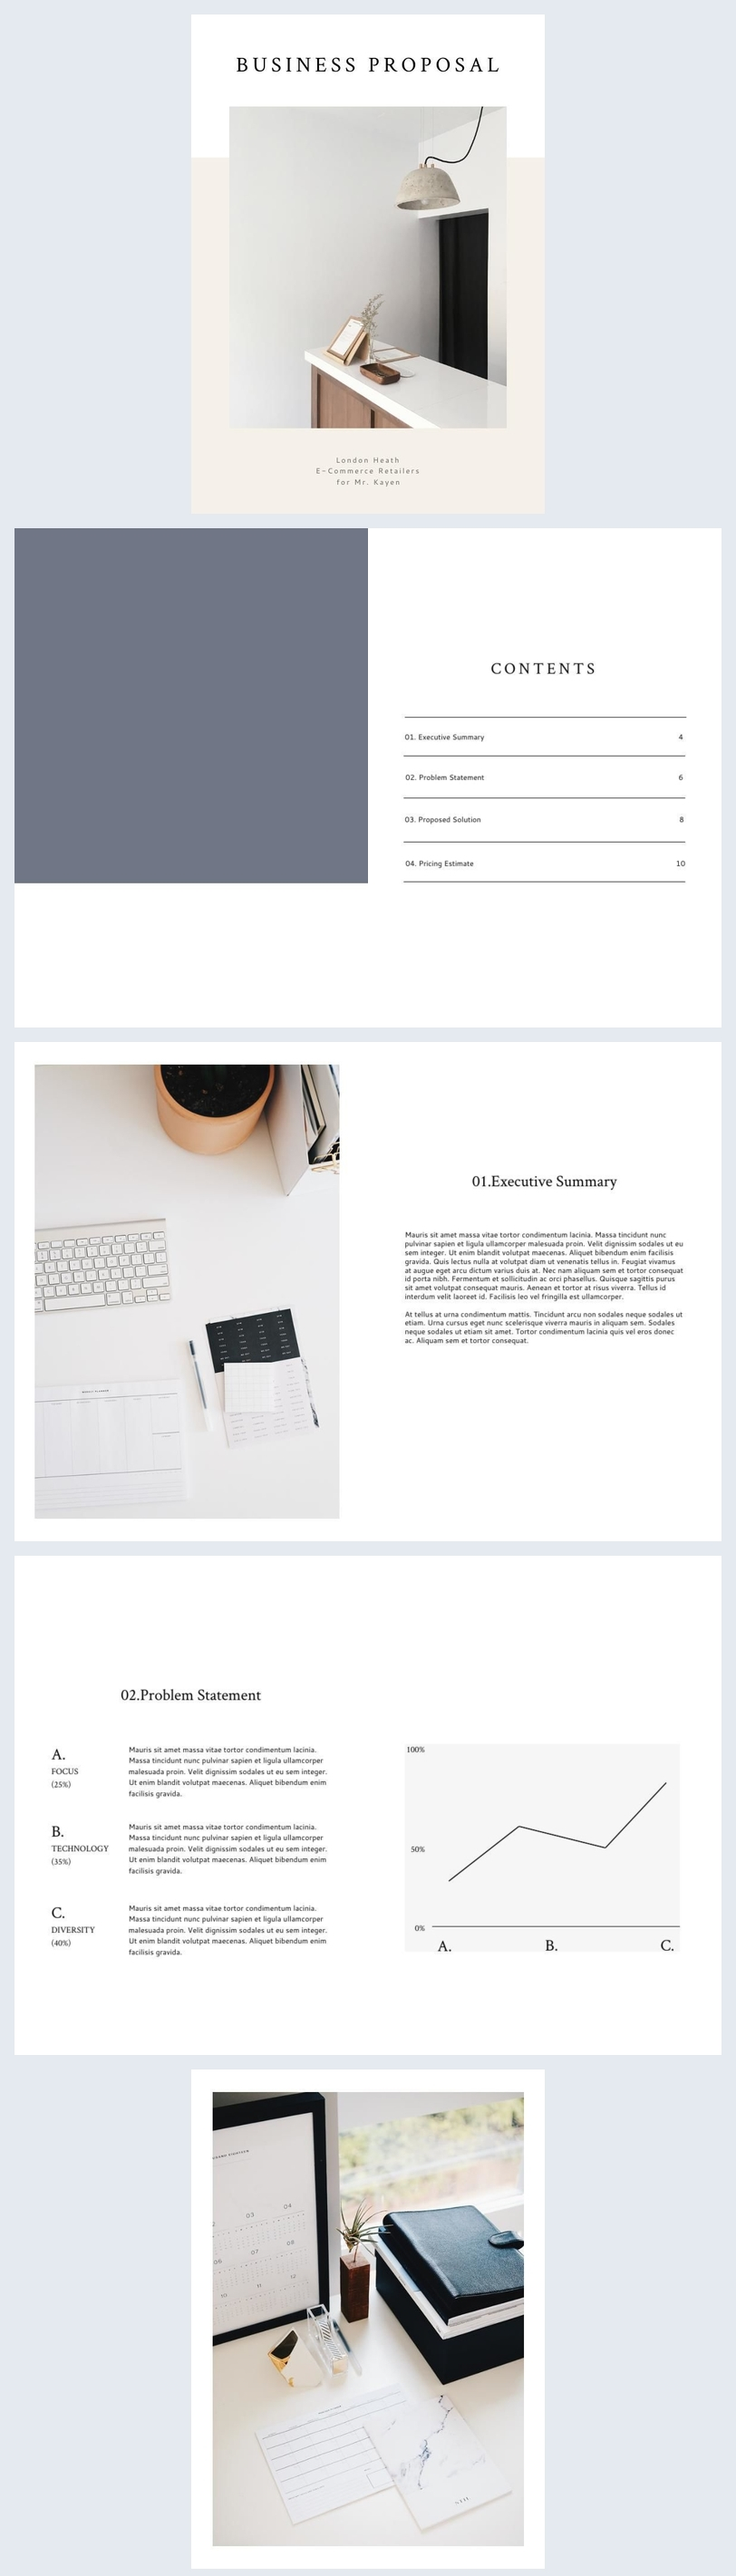 Elegant Business Proposal Template & Example